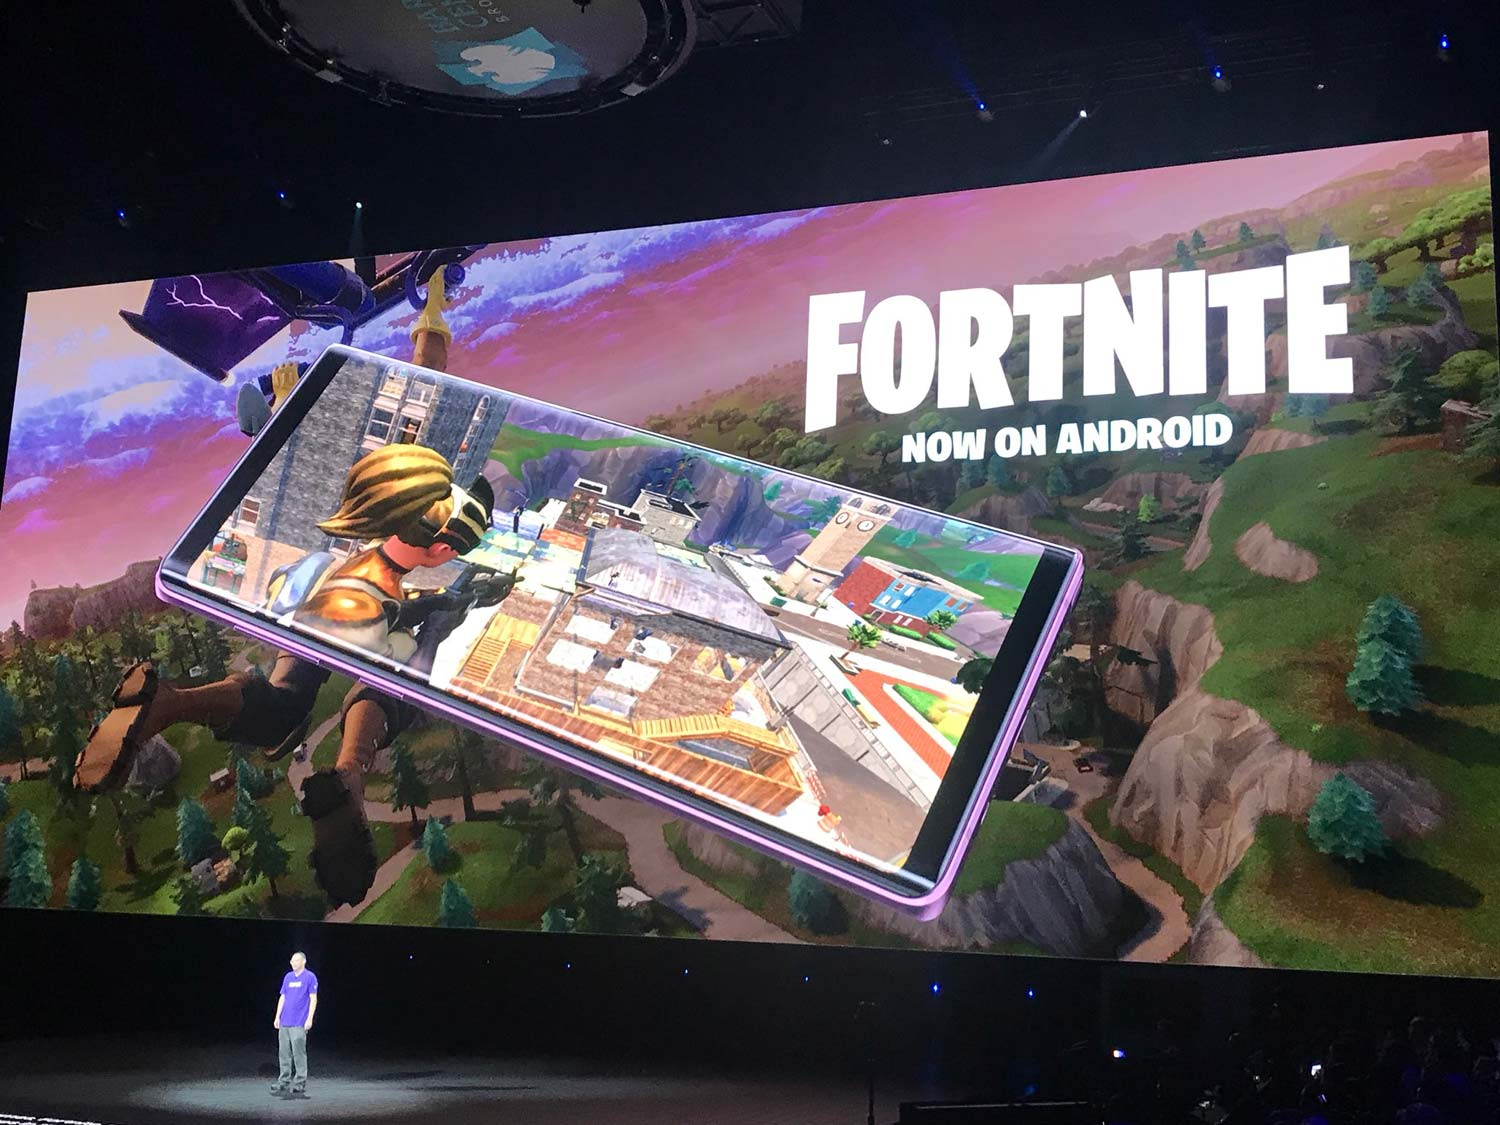 Download Fortnite for Android in 2019: